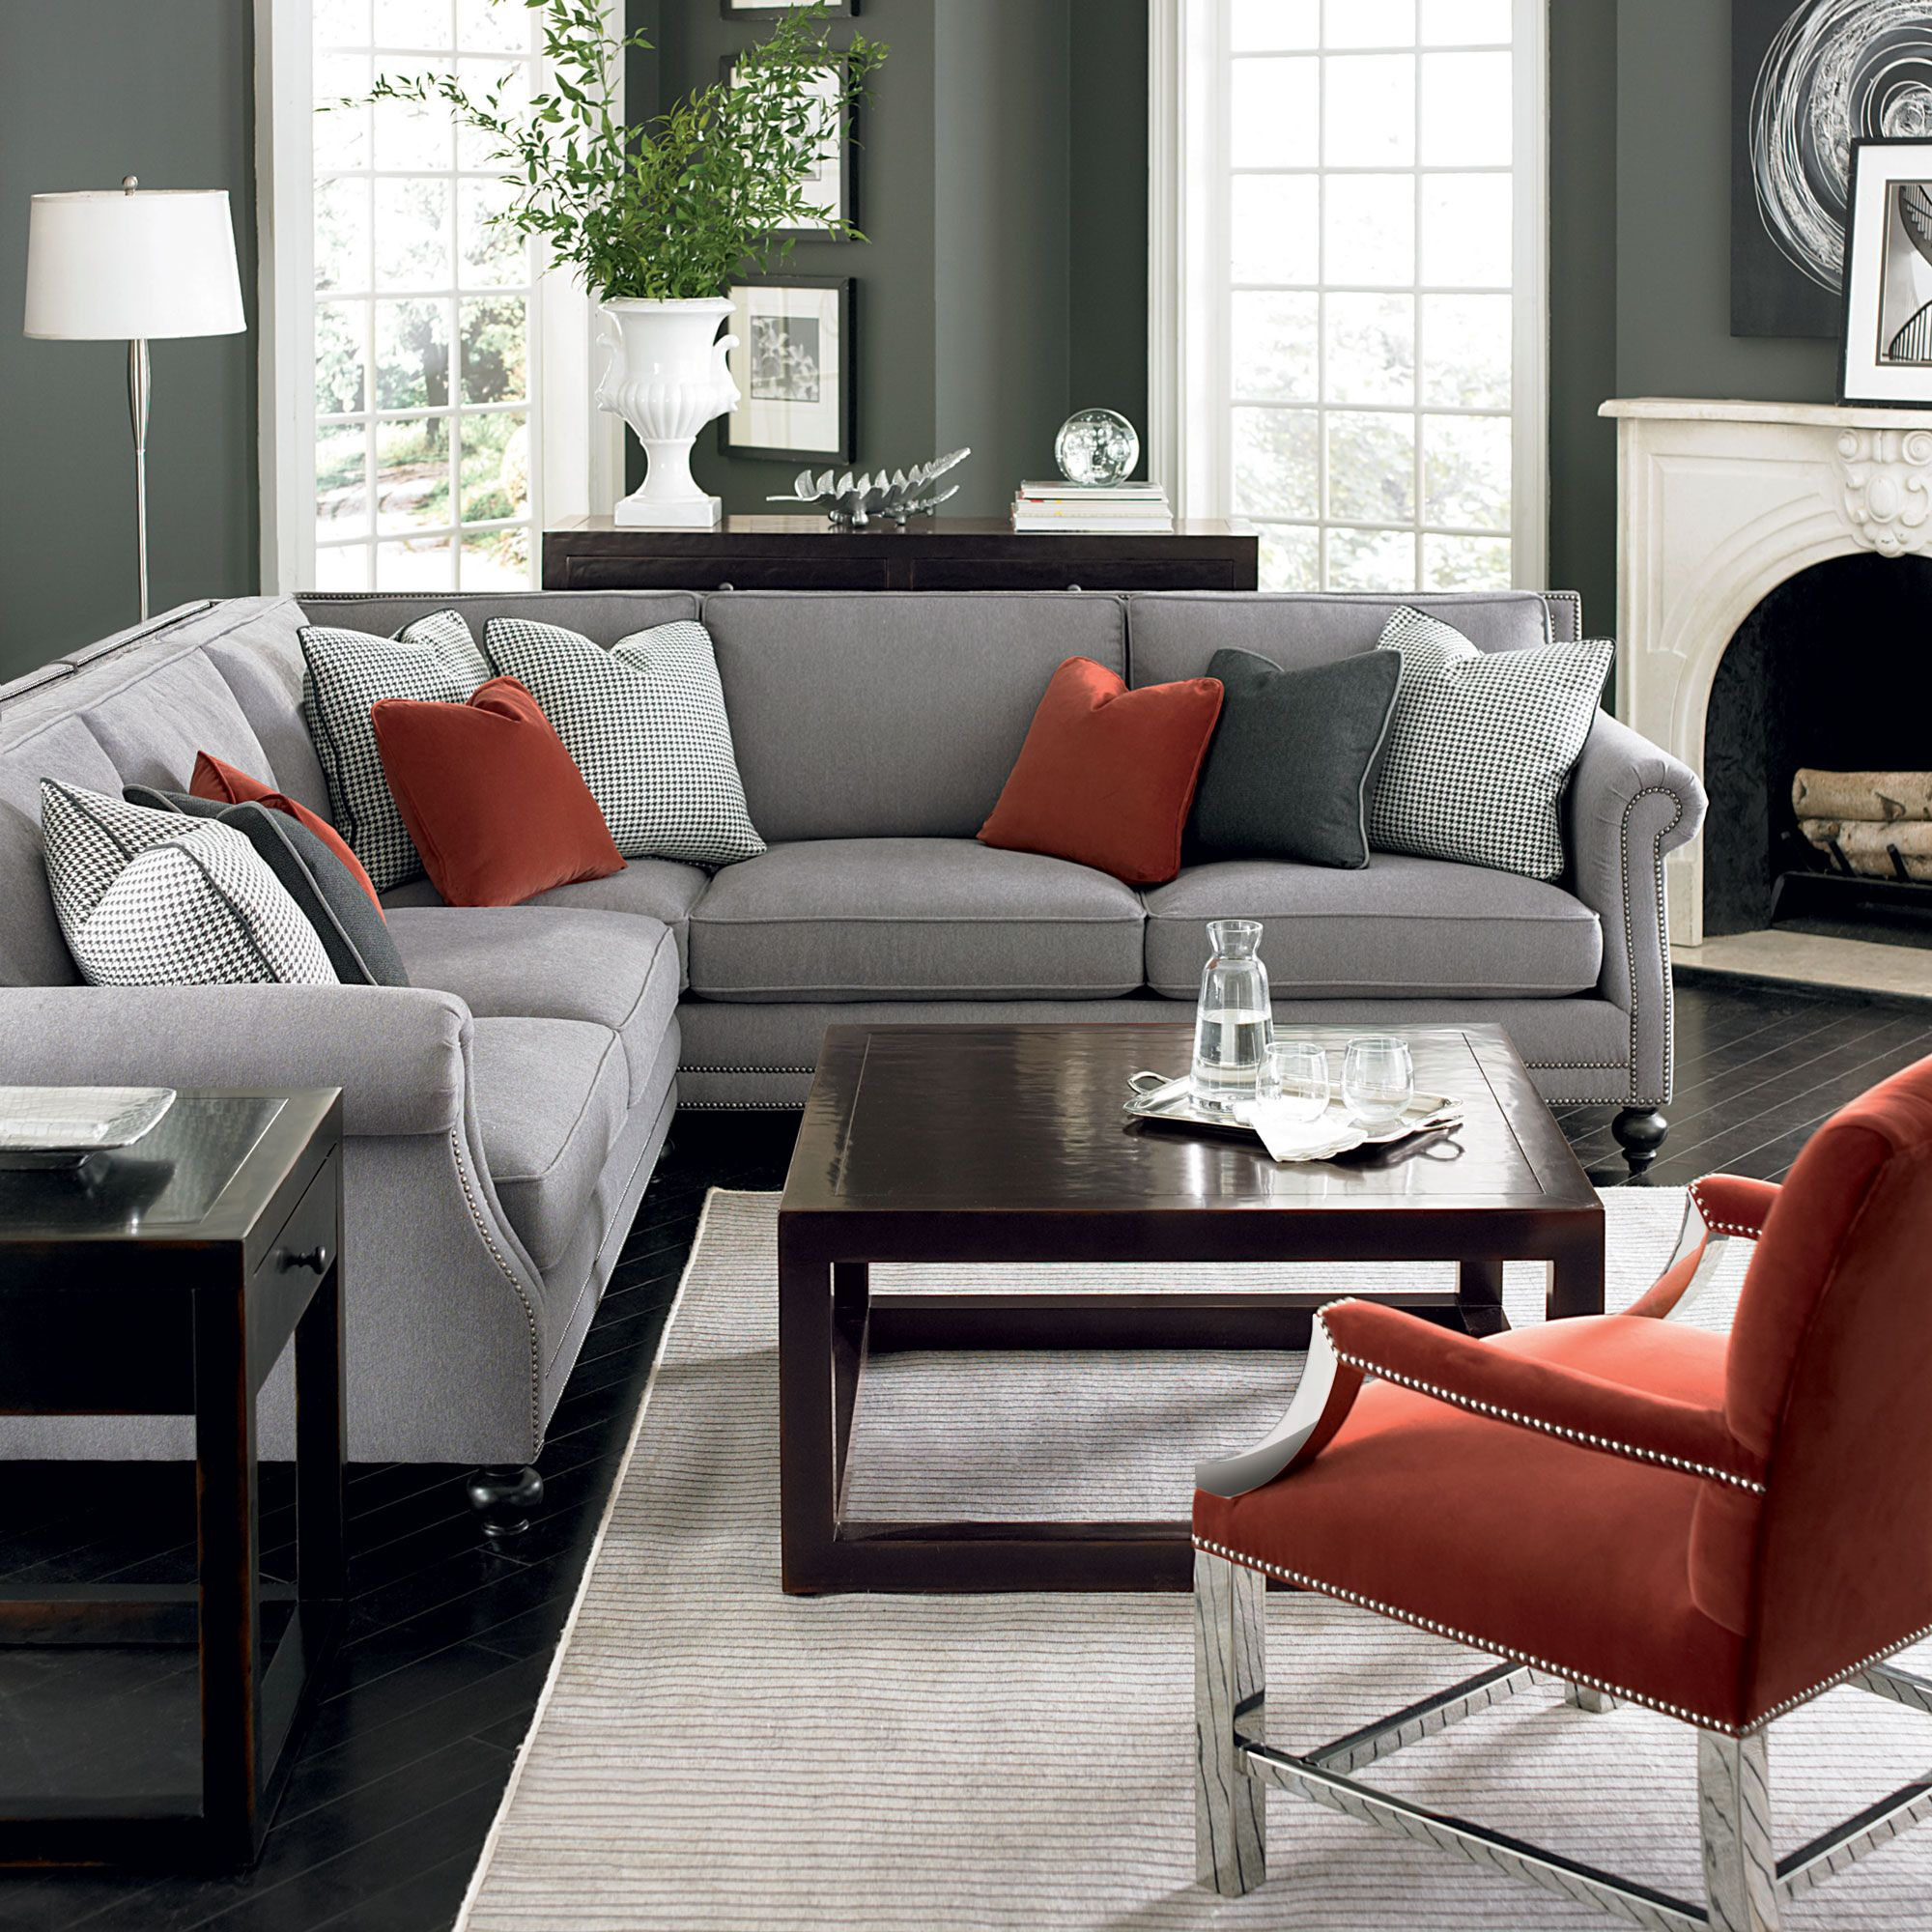 Salon Gris Et Rouge Bordeau bernhardt living room in grey, red, and silver. brae